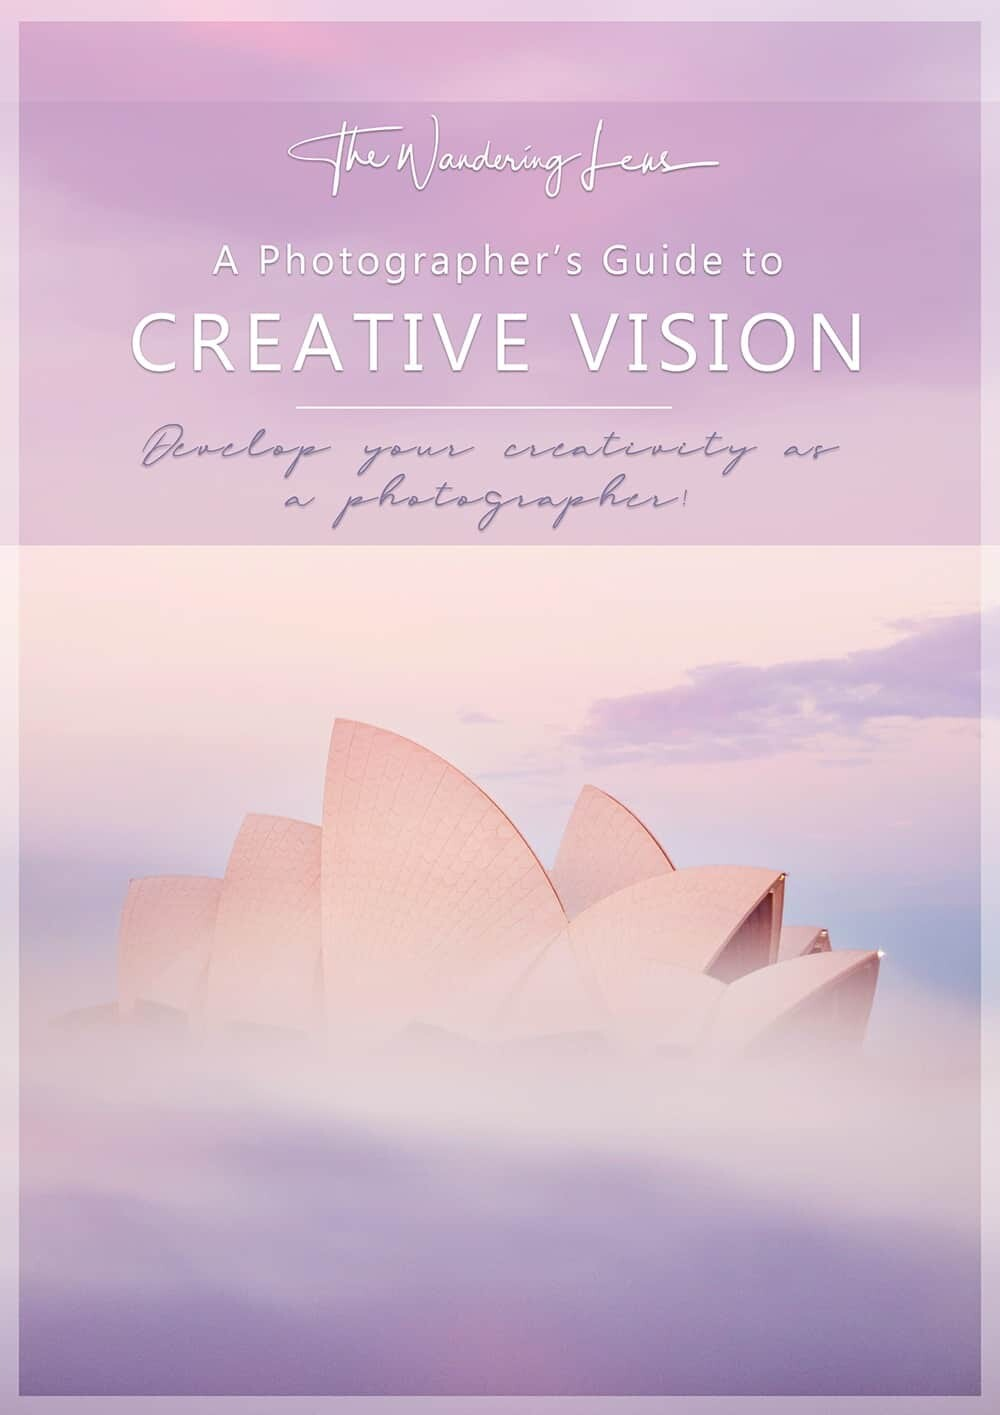 Creative Vision eBOOK - A Photographer's Guide to Unleashing their creativity.